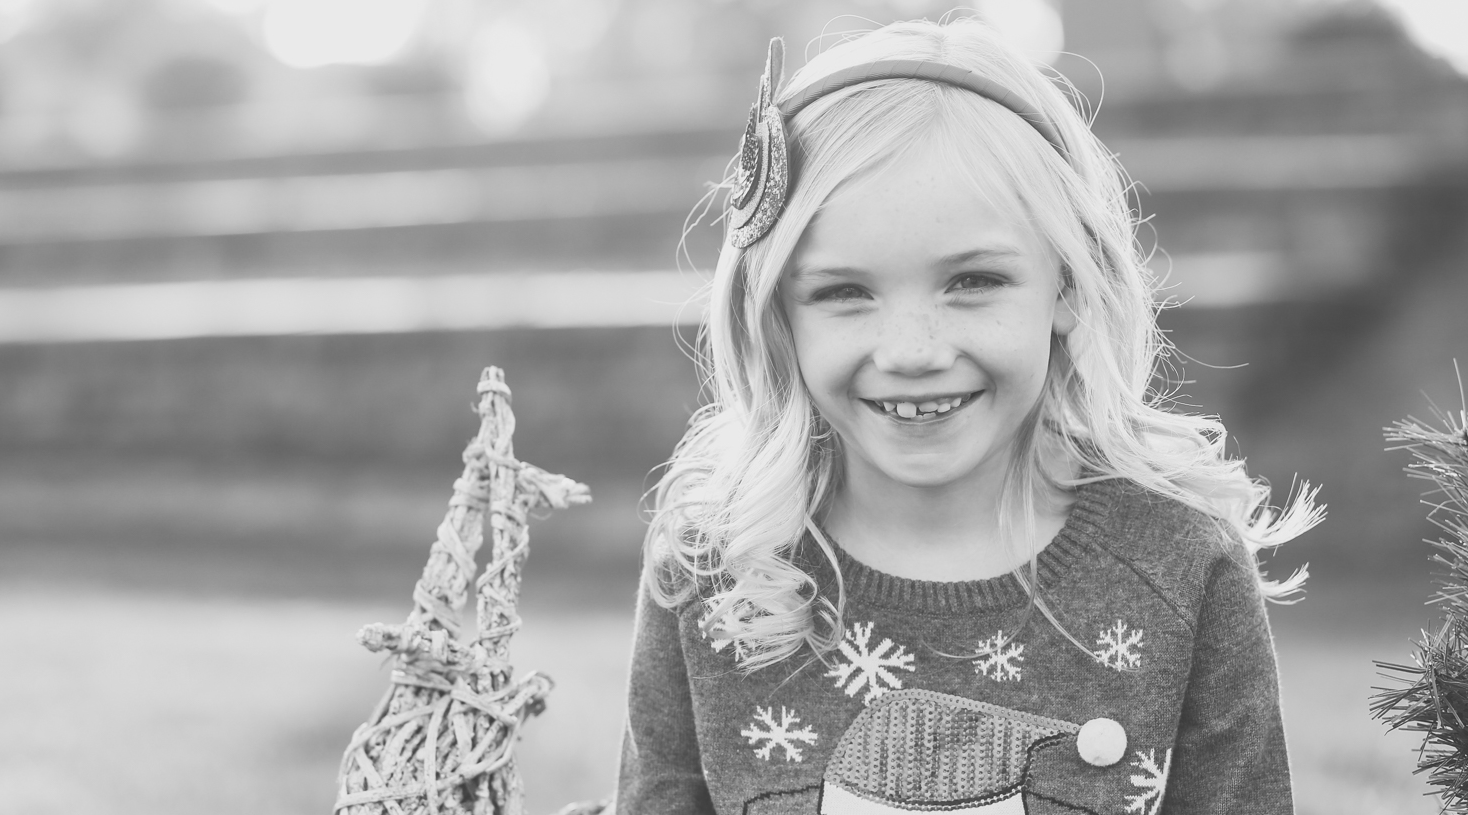 capture-your-family-and-children-during-the-holiday-season-in-phoenix-az-with-danielle-jacqueline-photography-while-getting-your-home-cleaned-by-maid-to-be-clean